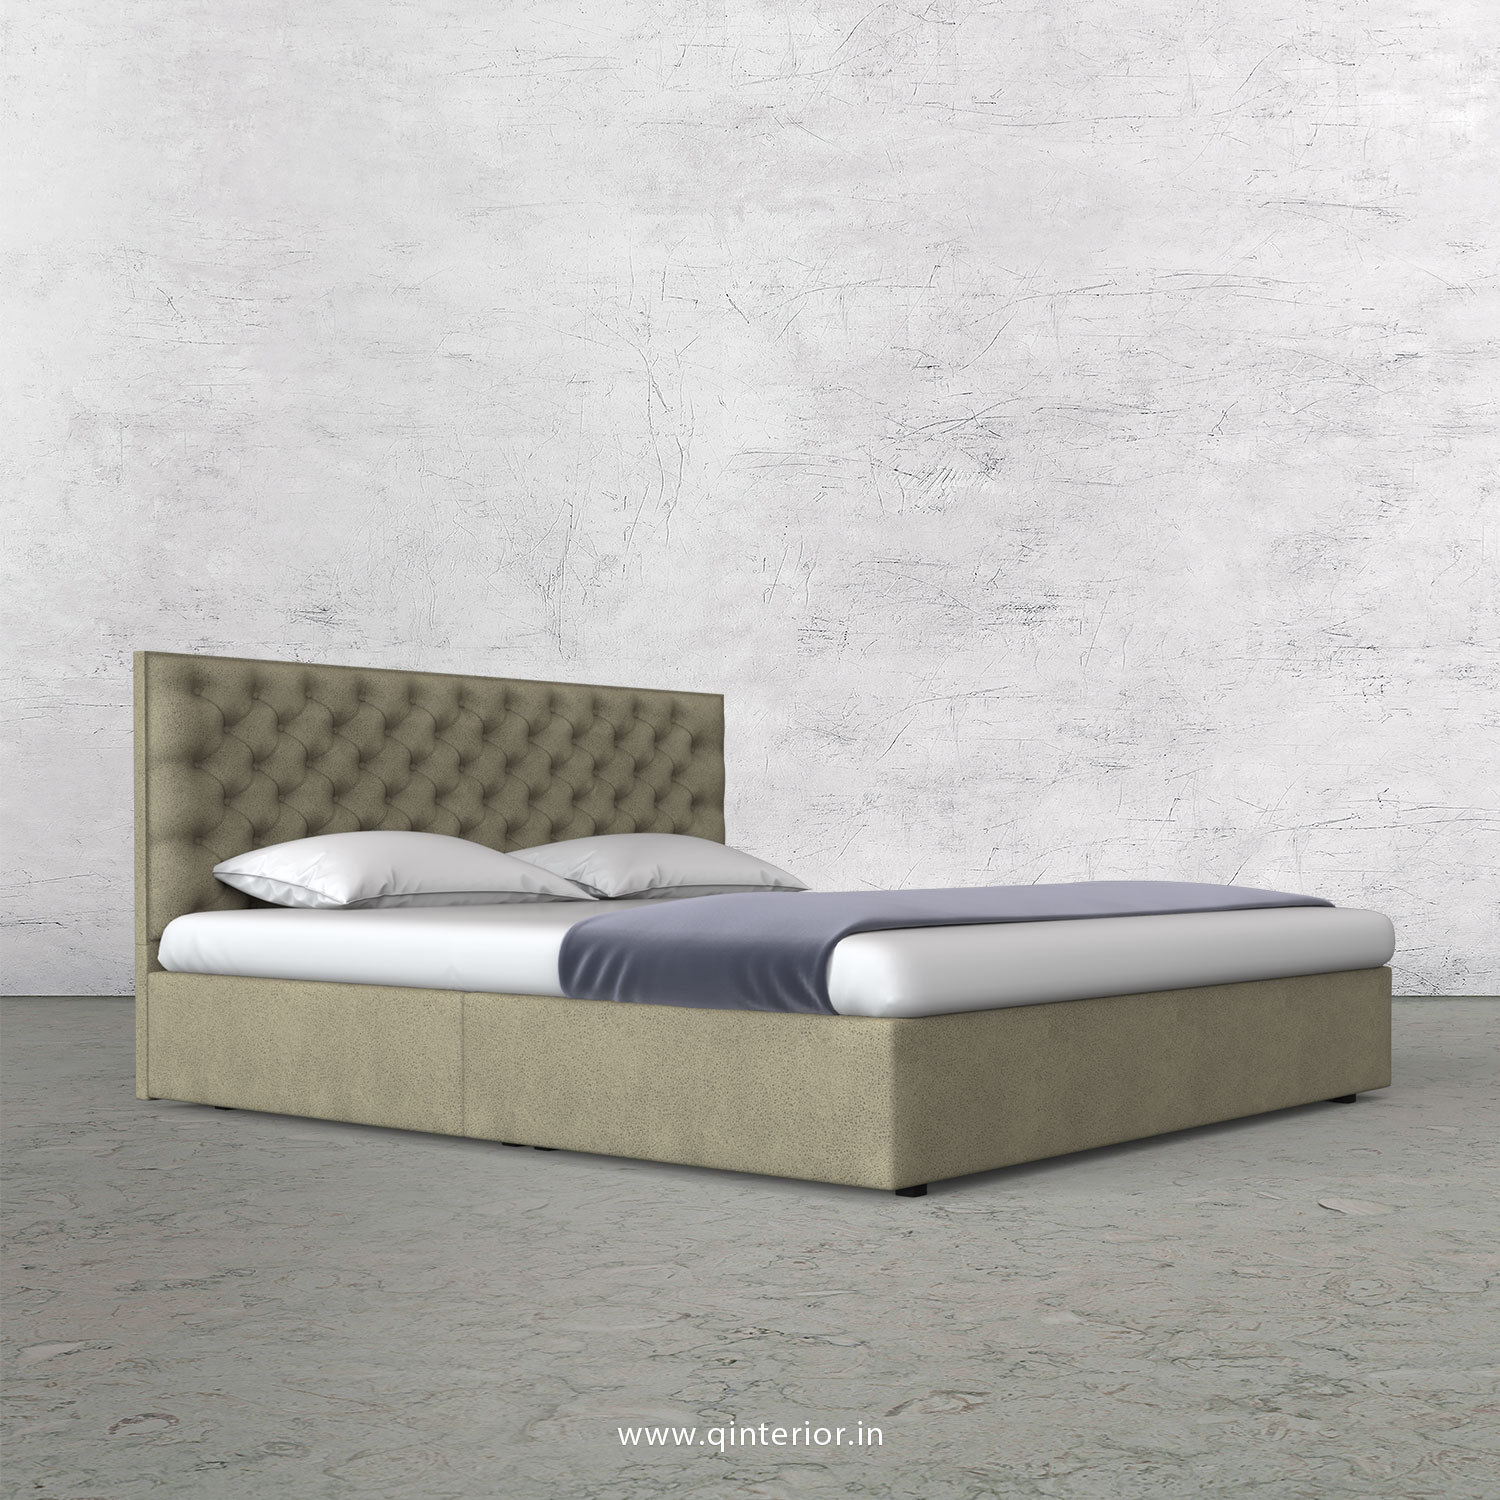 Orion King Size Bed in Fab Leather Fabric - KBD009 FL10